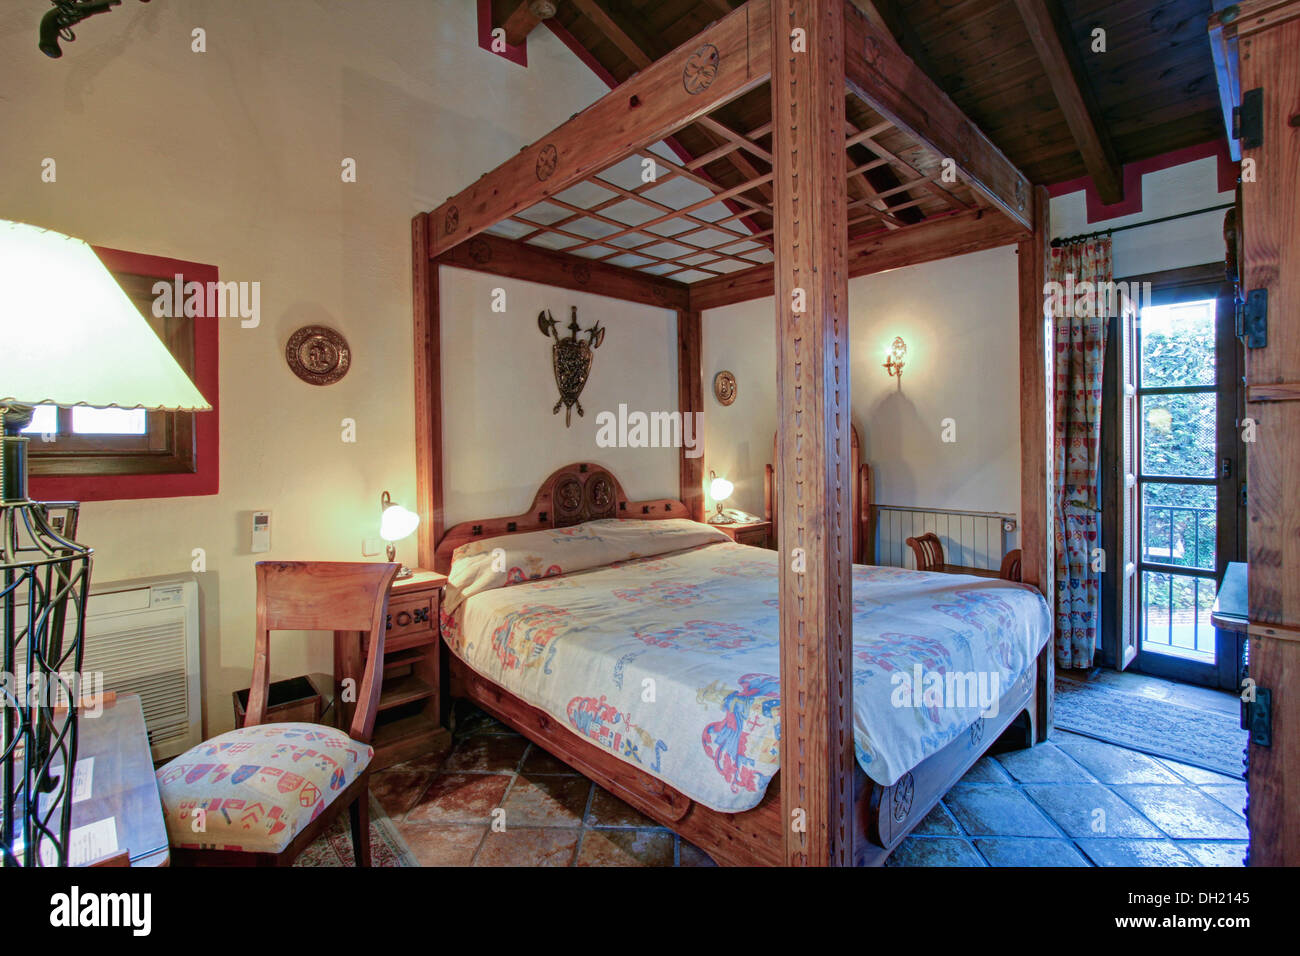 Rustic Wooden Four Poster Bed In Bedroom In Spanish Country Villa Stock Photo Alamy